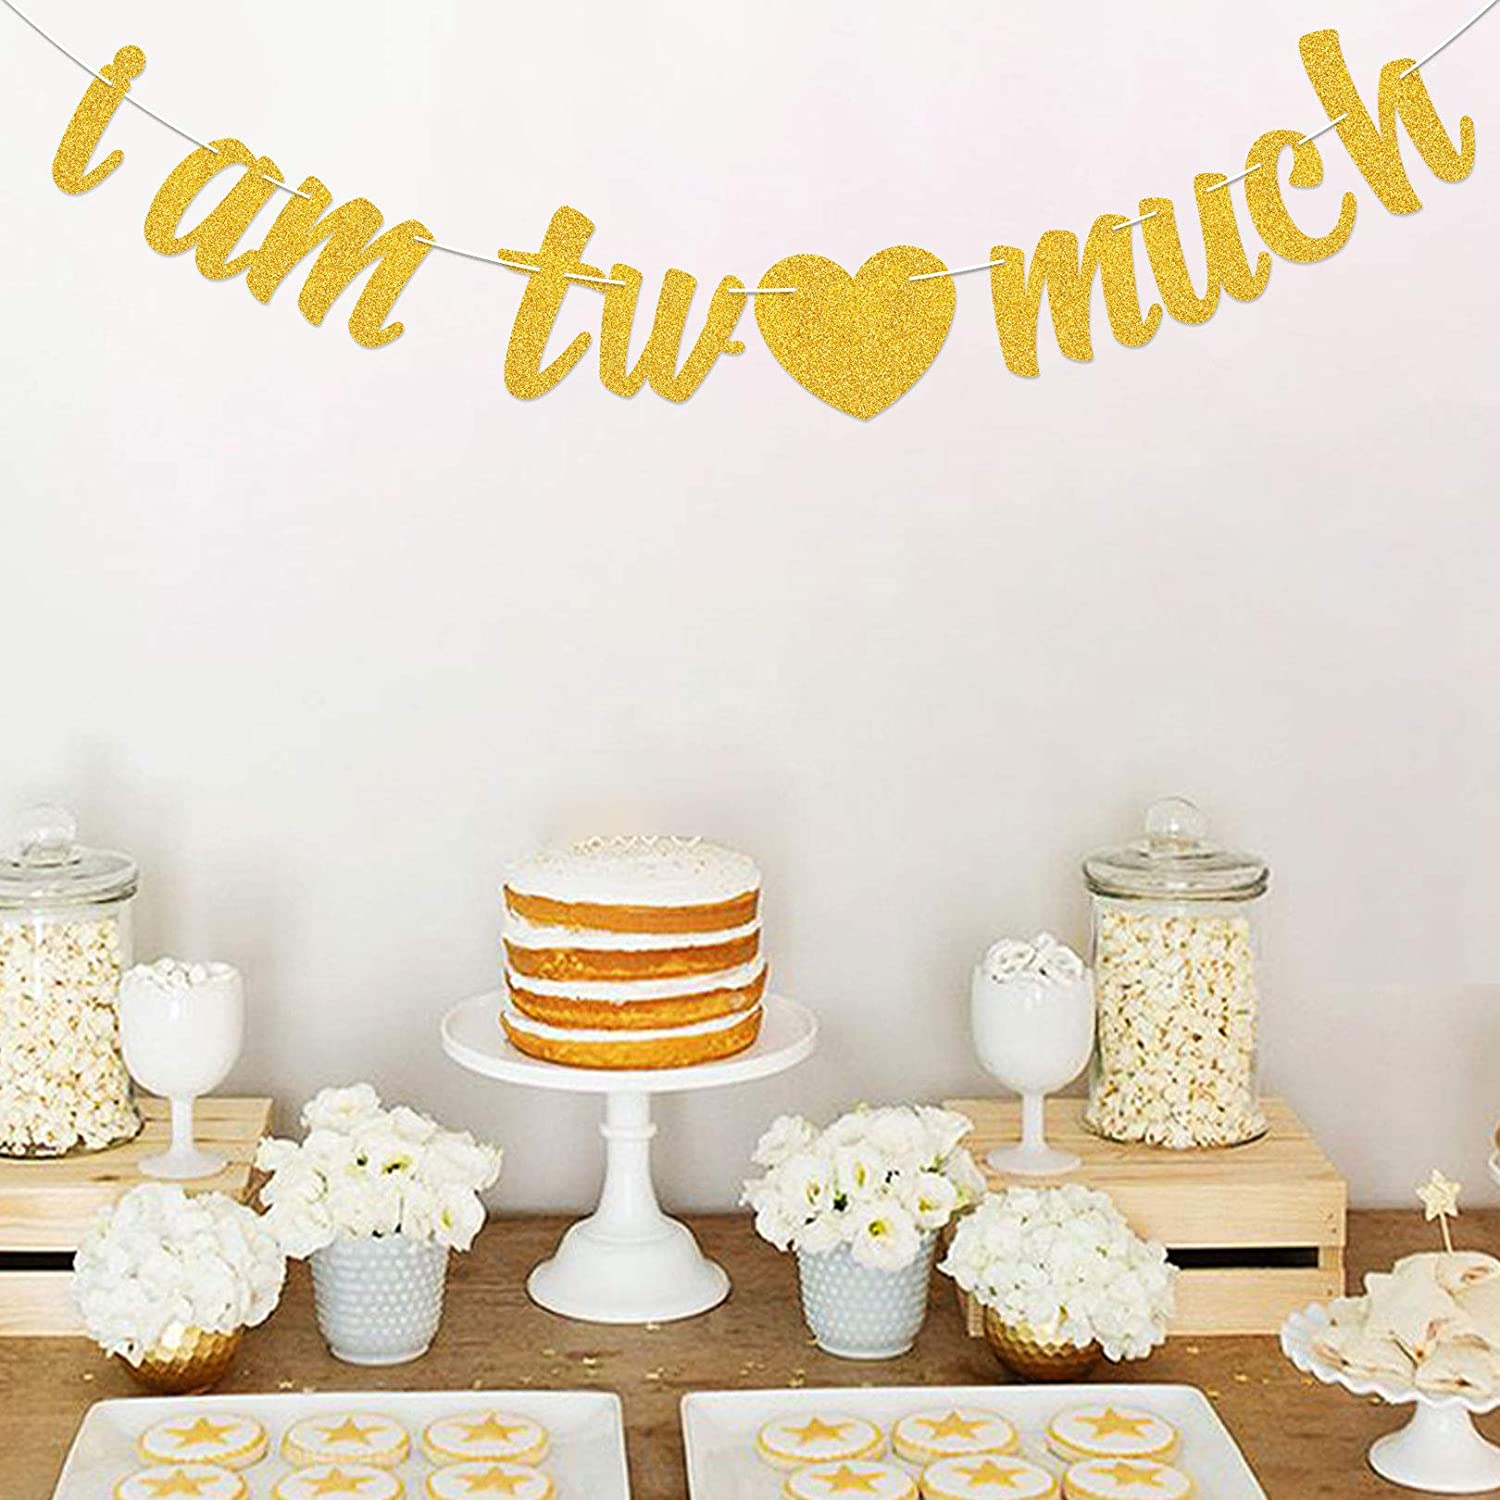 Purp Pie I Am Two Much Banner Love Baby 2nd Birthday Decoration Gold Glitter Happy Party Supplies